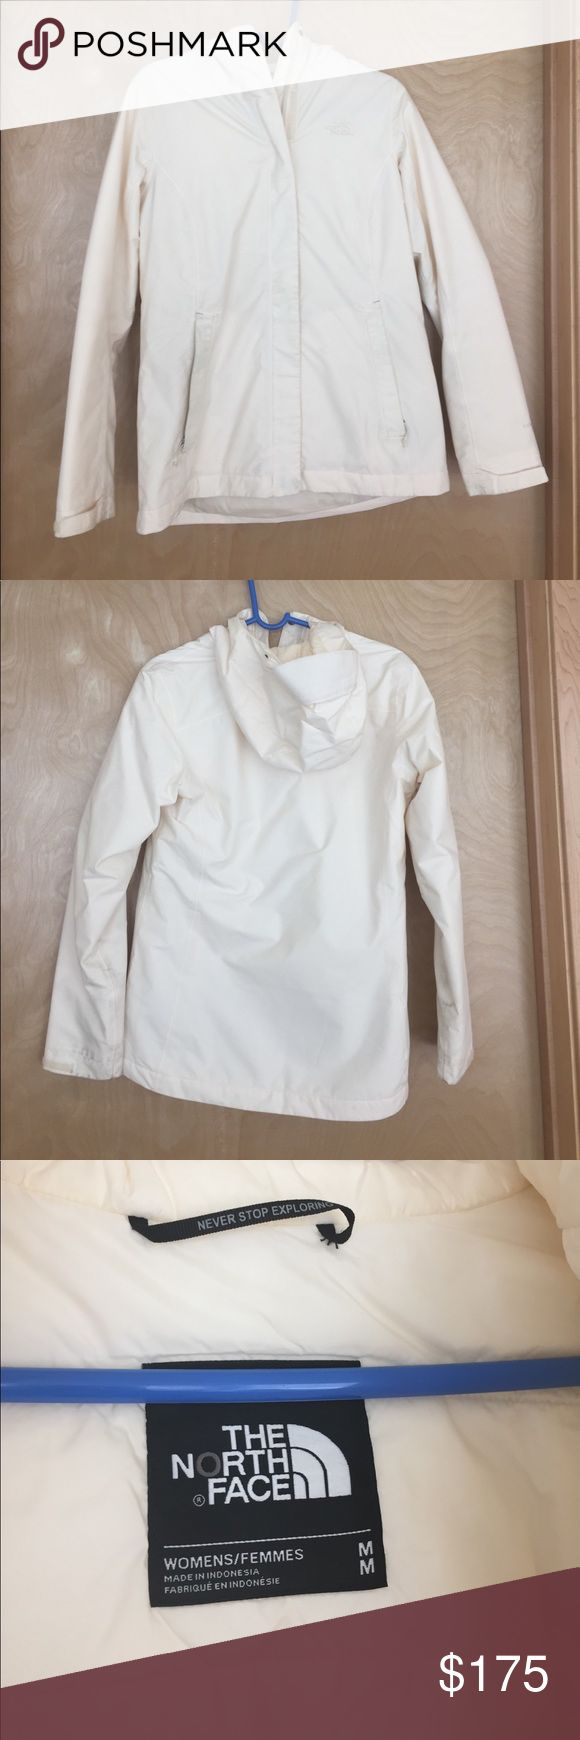 Women's north face Hyvent winter jacket Women's north face size medium Hyvent winter jacket. Color is a really pretty off white/ivory. This is the perfect jacket for the beginning/ends of winter in Wisconsin. It would probably be perfect for all winter months in the warmer states. There are areas of discoloration as shown in the photos. The discoloration on the inside of the jacket is from my dark wash jeans. I am confident that some of the marks would most definitely come out in the wash…